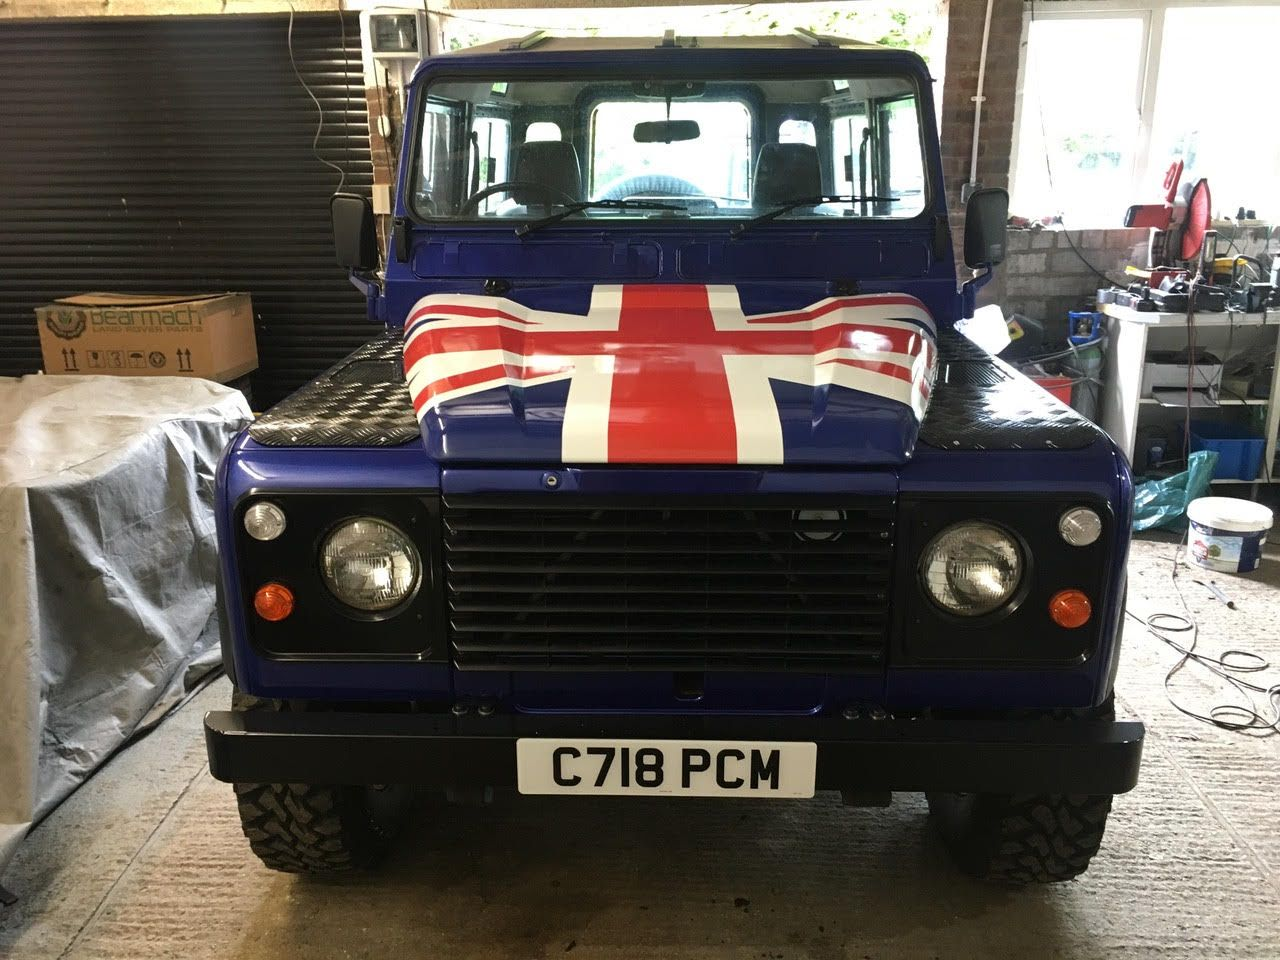 Custom union jack vinyl bonnet wrap on land rover